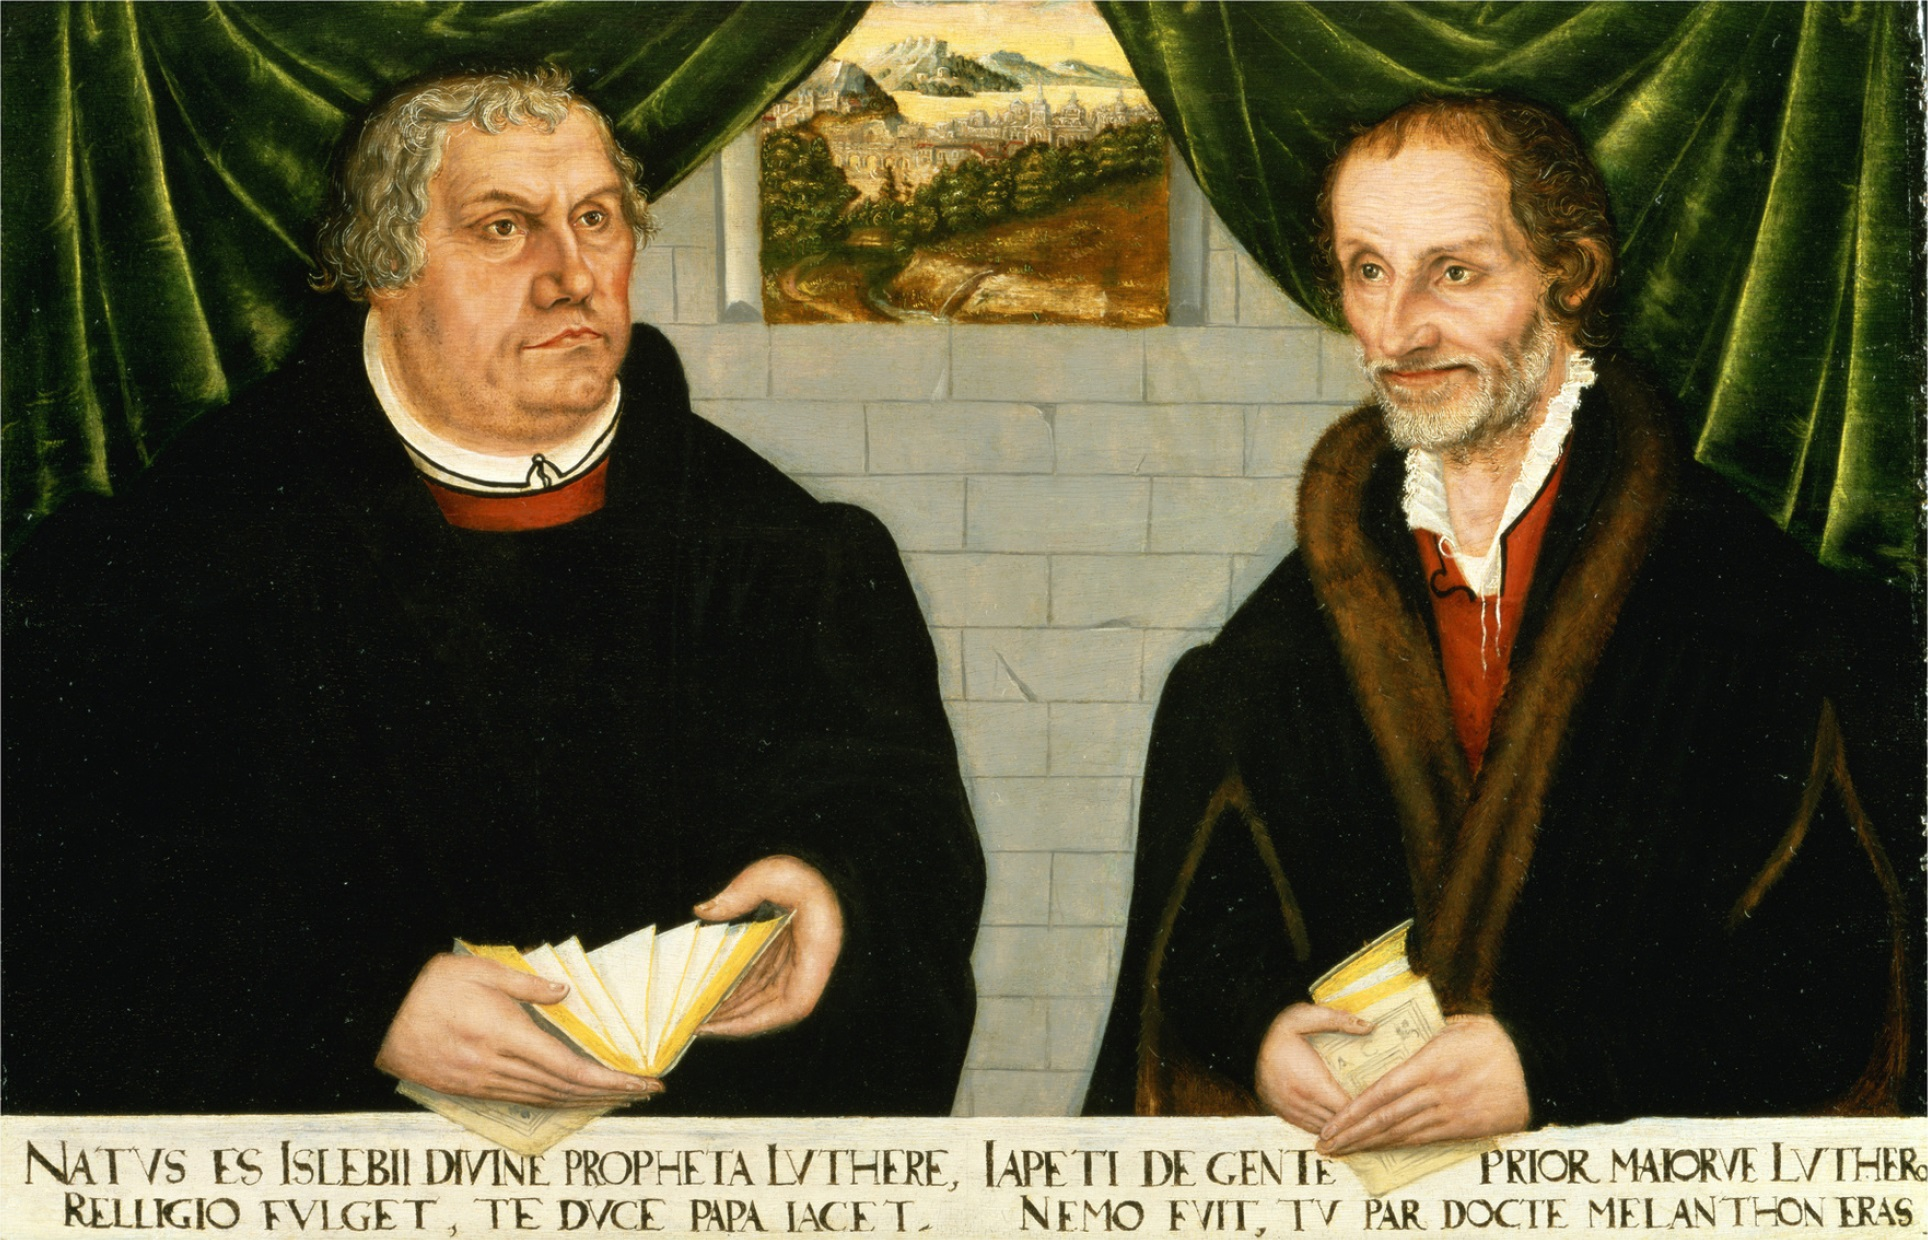 Double Portrait of Martin Luther (1483-1546) and Philip Melanchthon (1497-1560) (oil on panel)